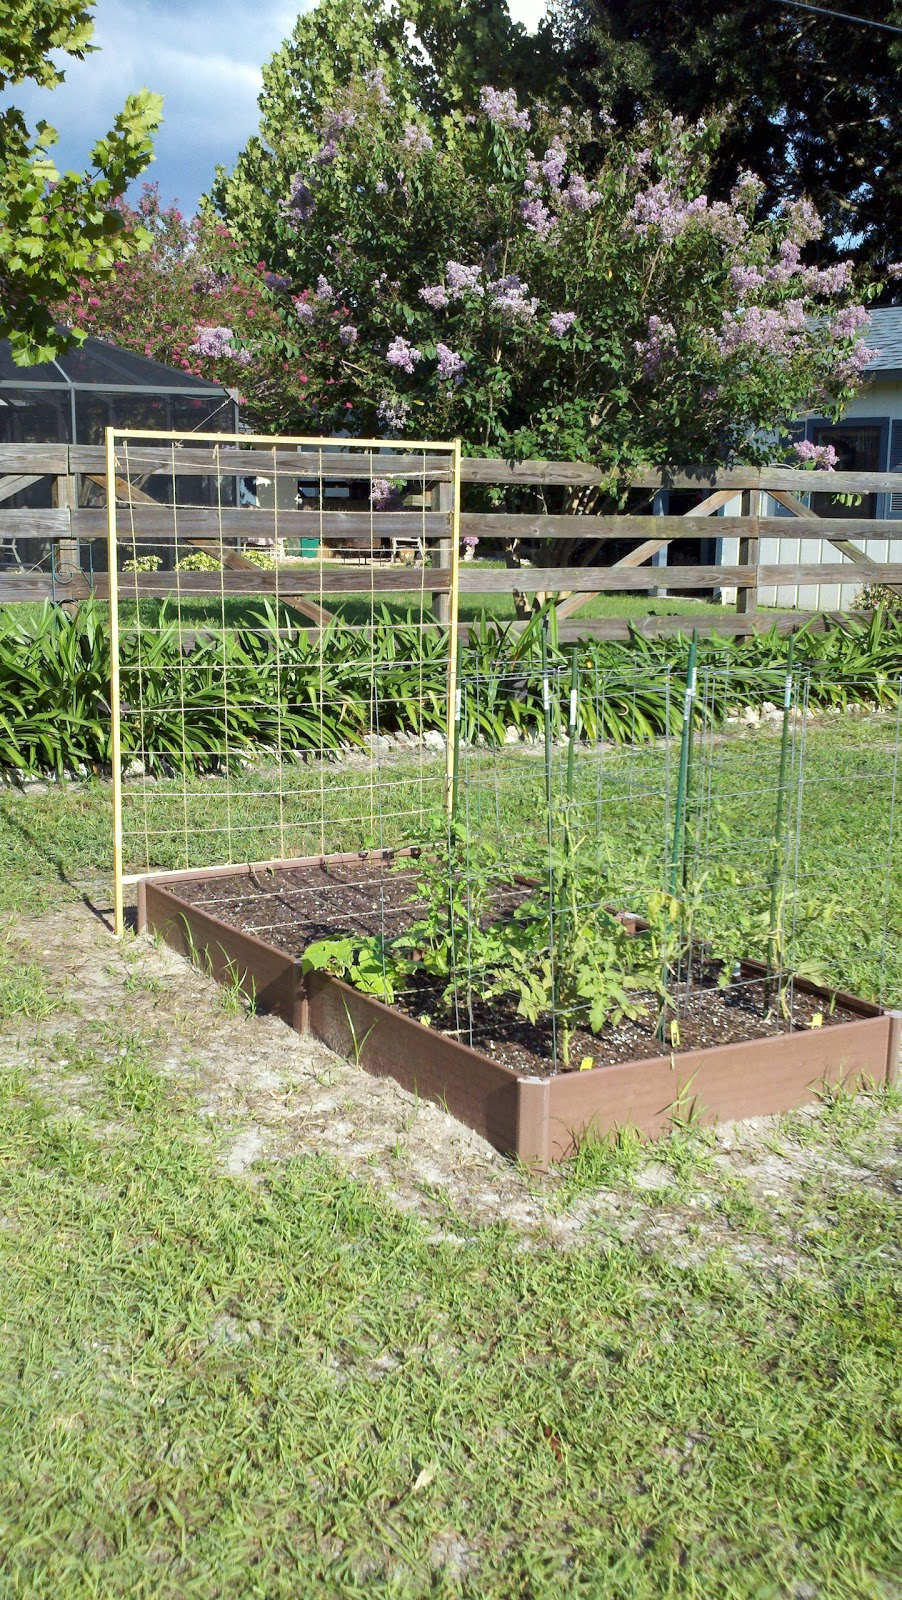 Vegetable gardening in sw florida the beginning of a passion - South florida vegetable gardening ...